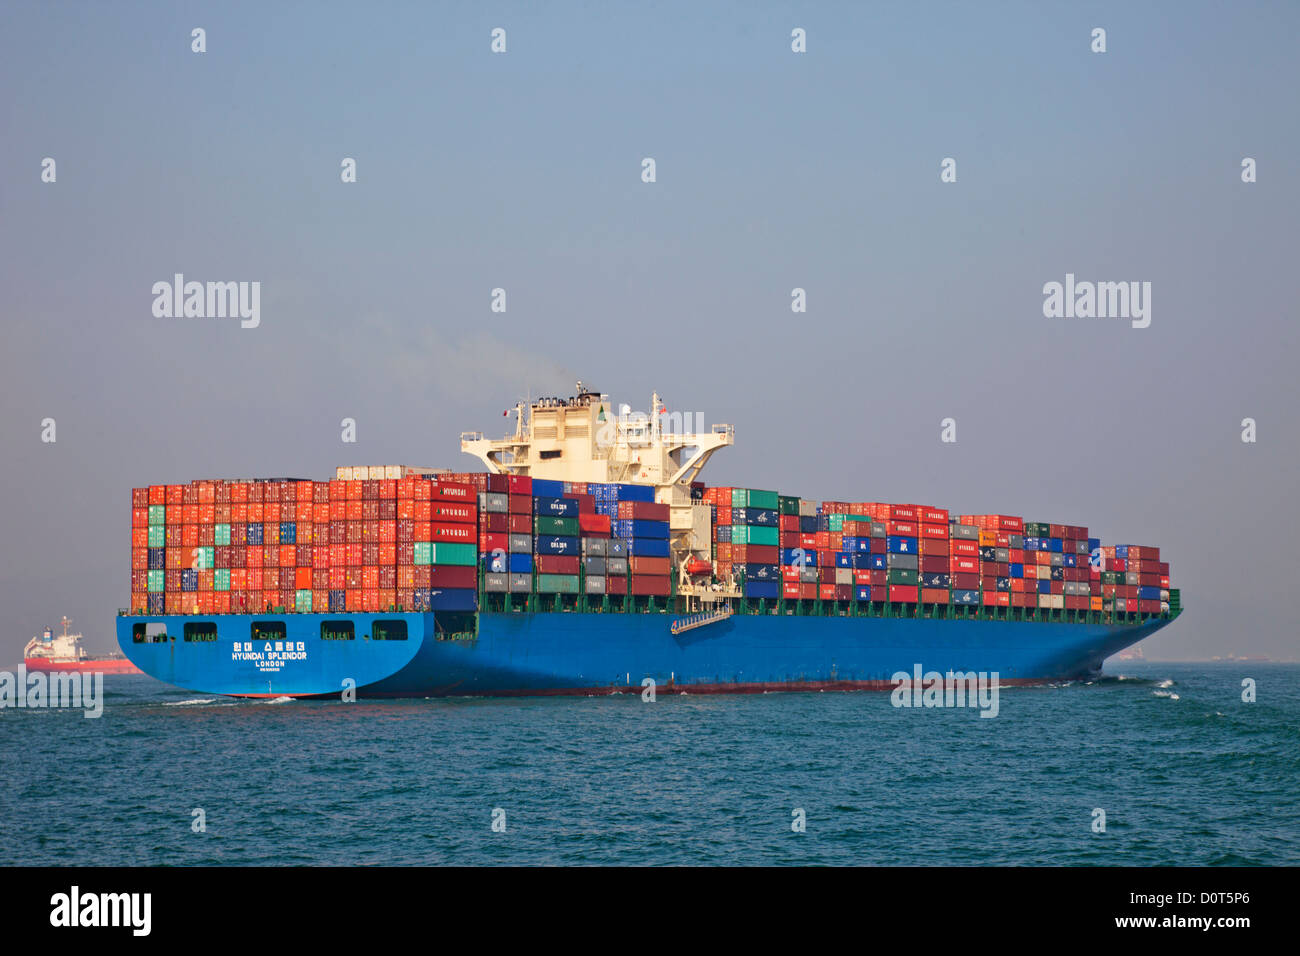 Asia, China, Hong Kong, Container Ship, Ships, Shipping, Containers, Trade, Commerce, Cargo, Freight, Sea Cargo, - Stock Image